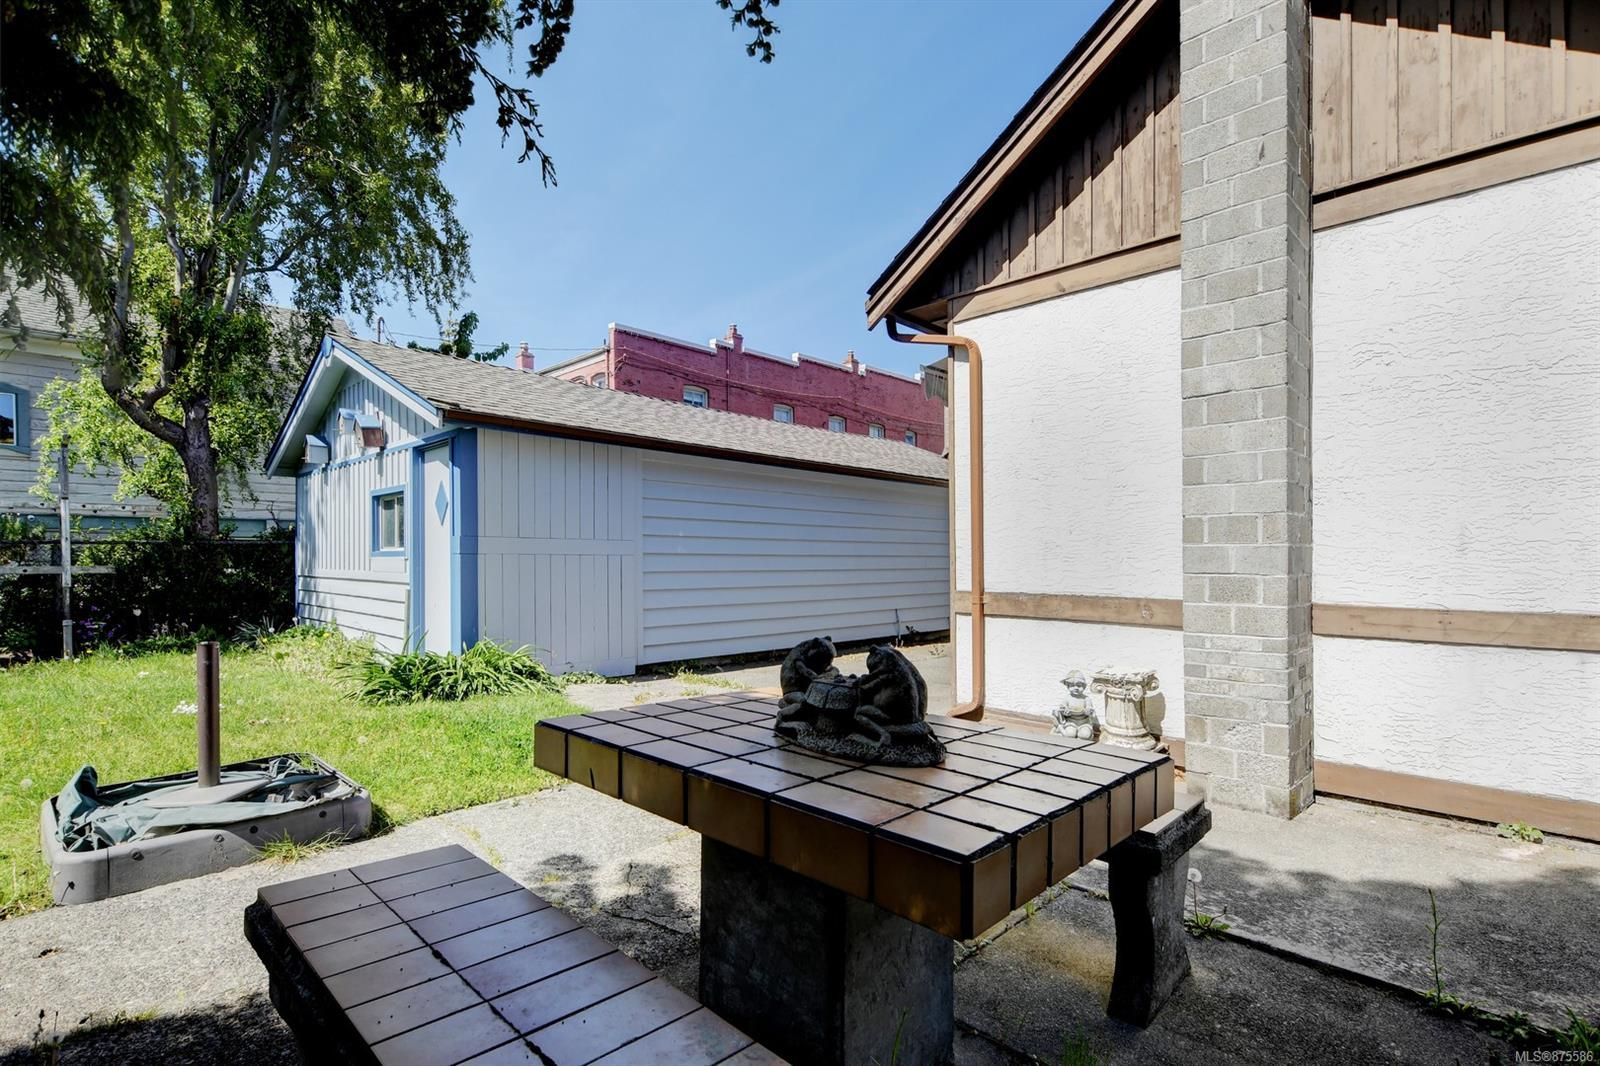 Photo 18: Photos: 55 Ontario St in : Vi James Bay House for sale (Victoria)  : MLS®# 875586